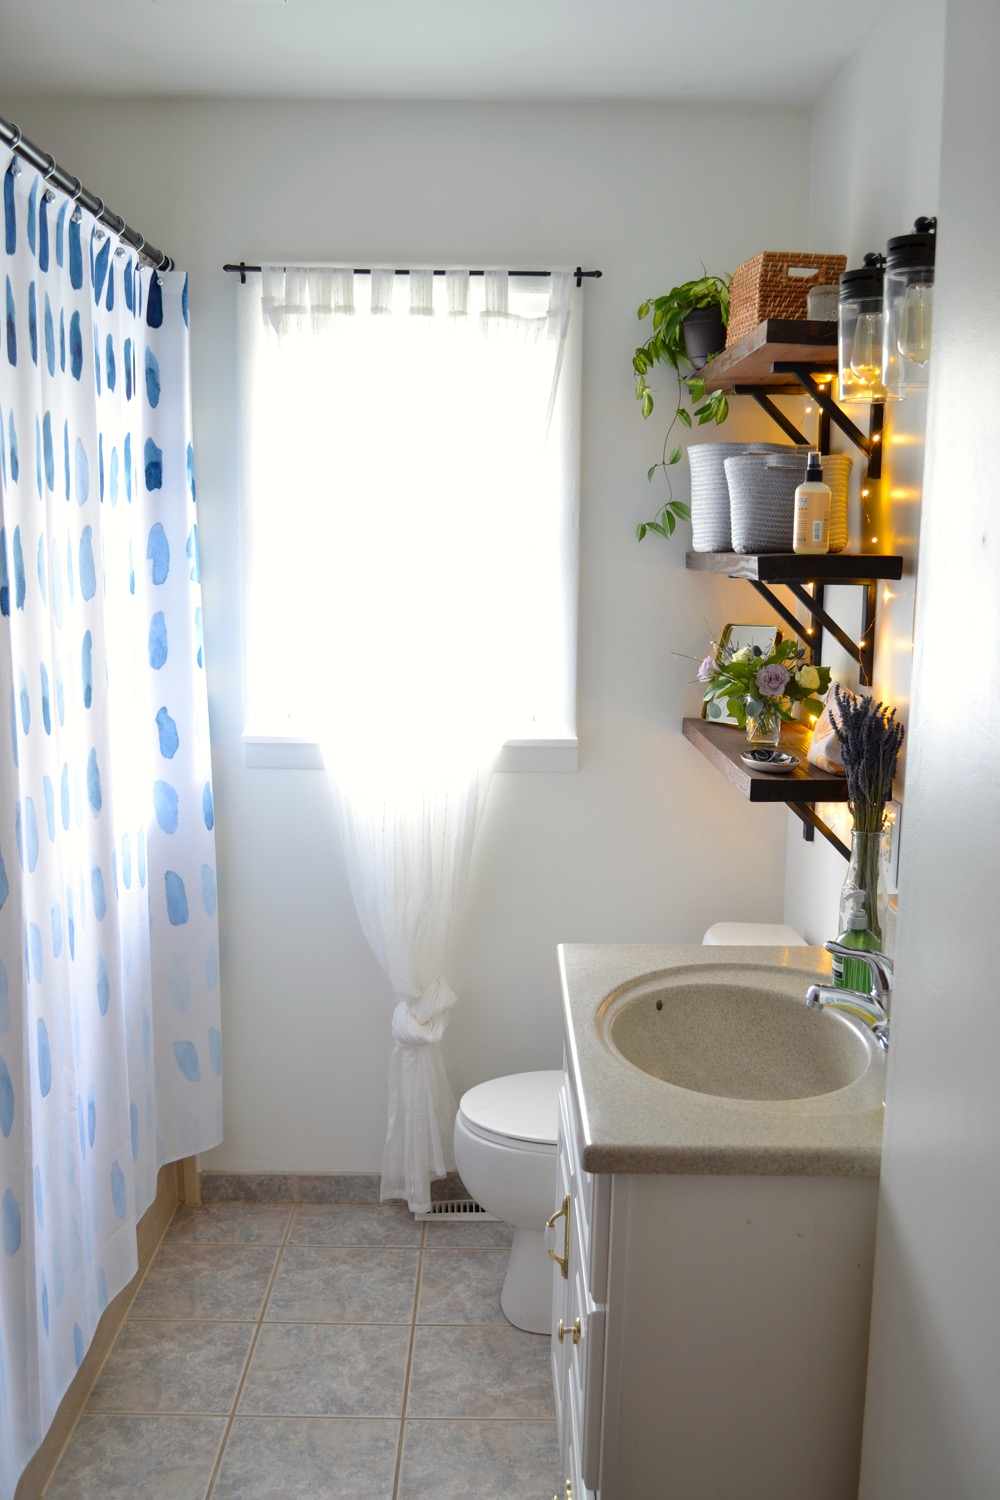 Small-bathroom-makeover-budget6.jpg